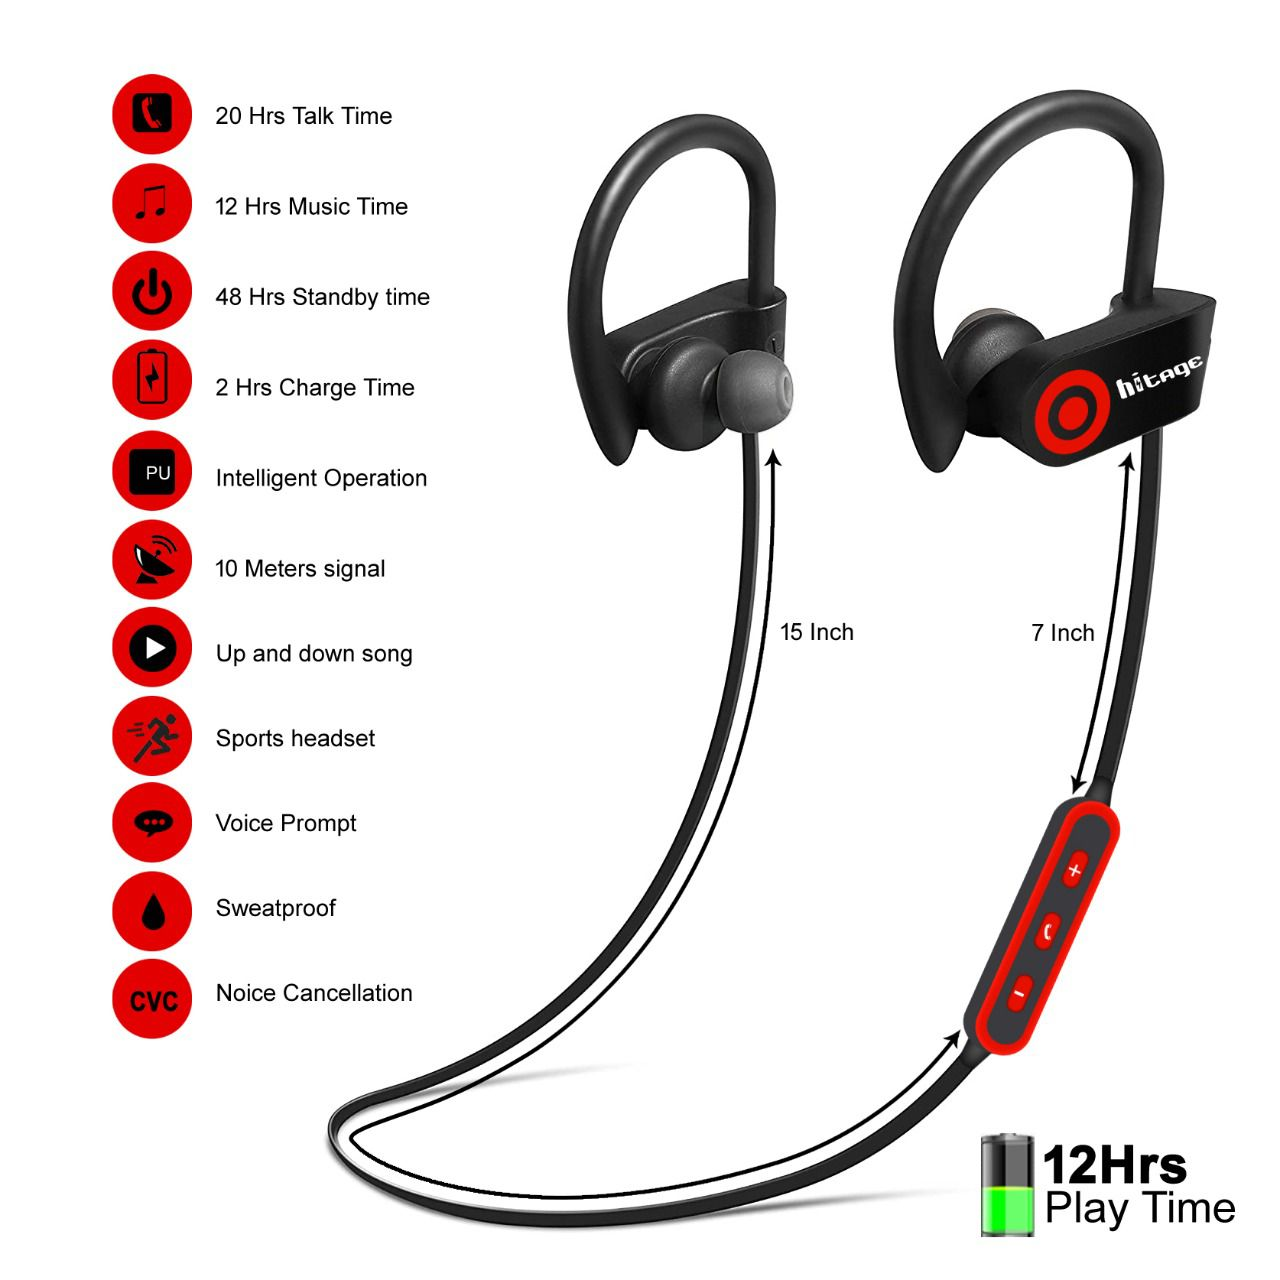 hitage QC 10s stereo headset Neckband Wired With Mic Headphones/Earphones